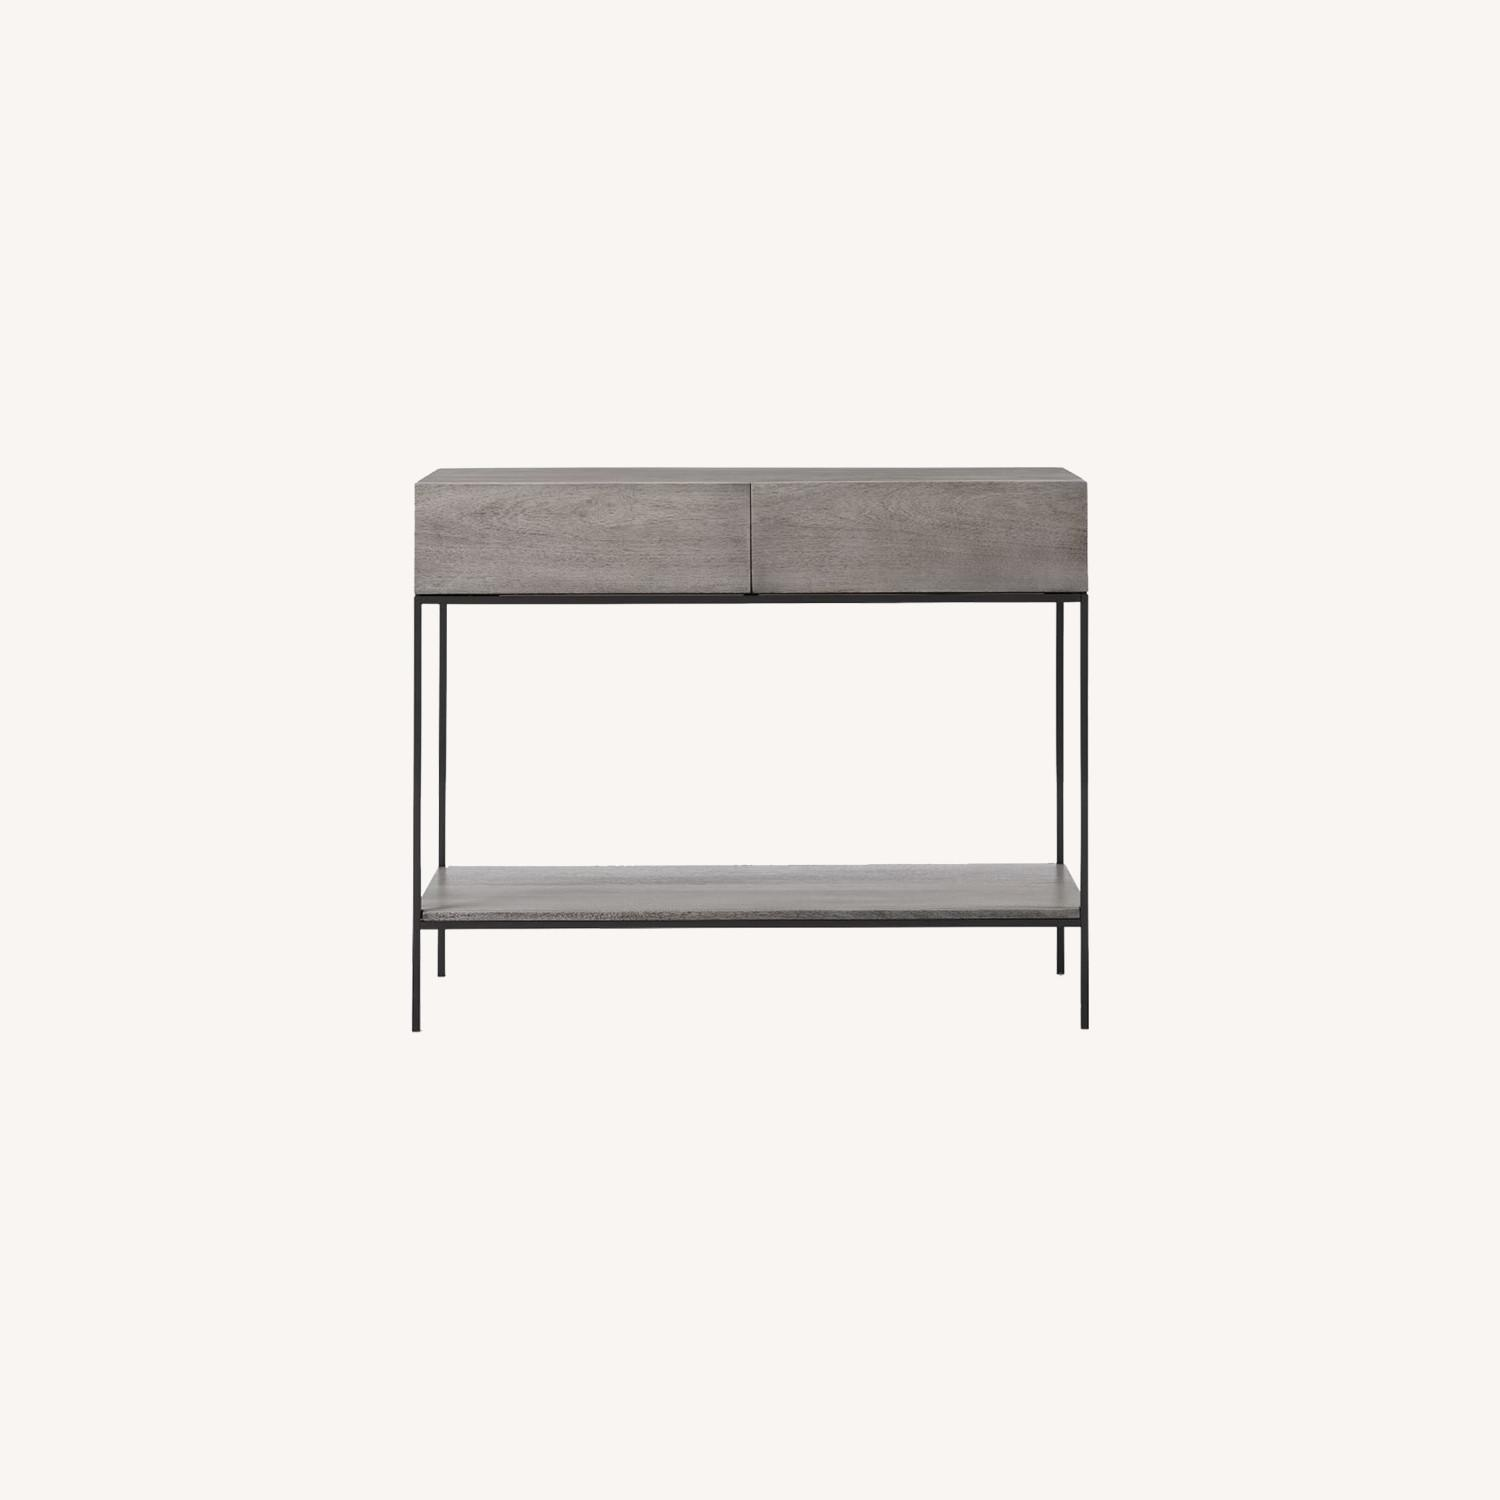 West Elm Industrial Storage Console, Gray - image-0